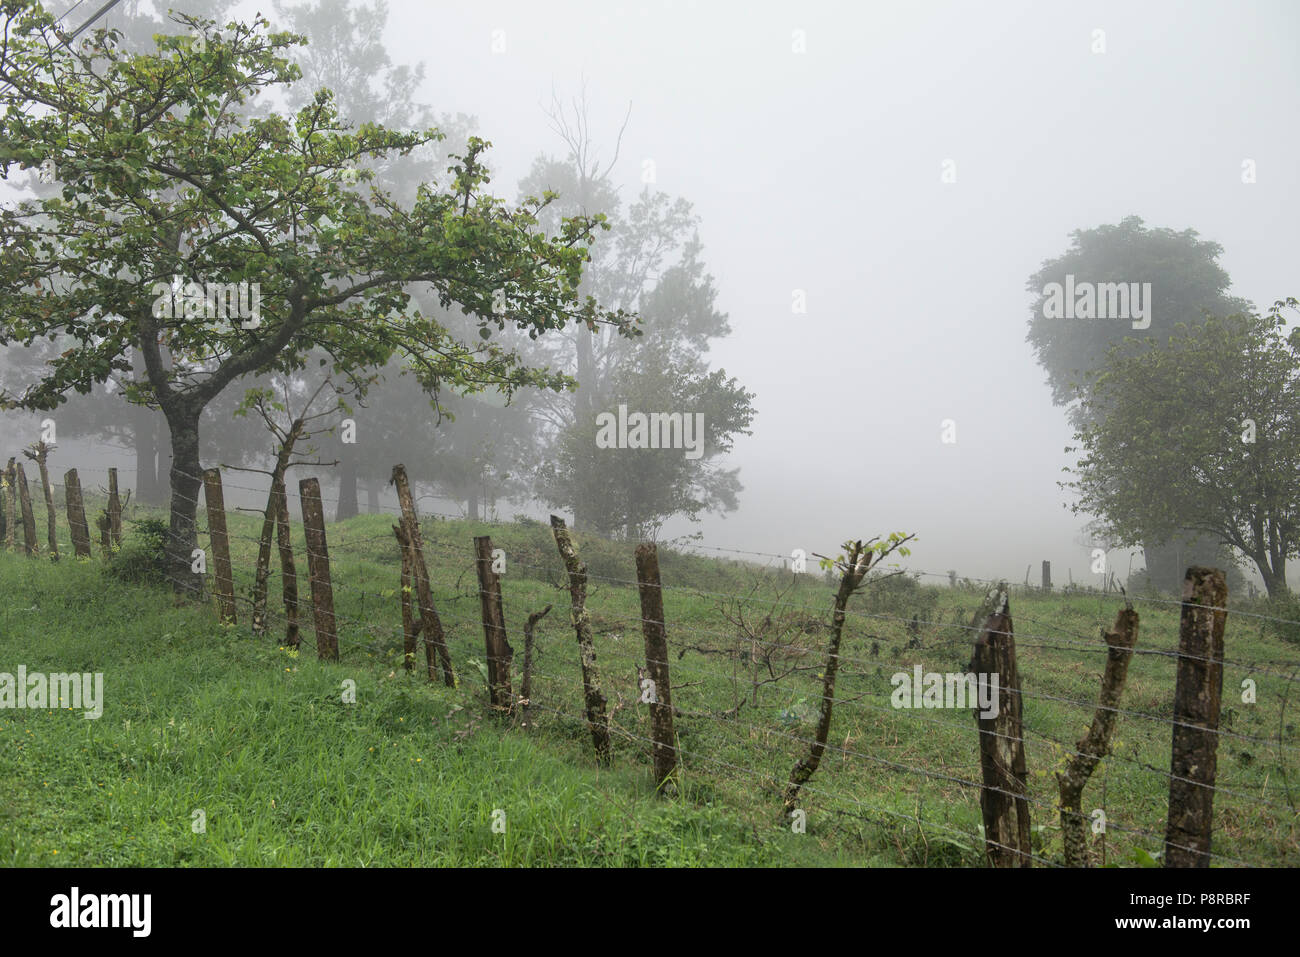 Dreamy foggy landscape in Costa Rica, Central America. A wire fence is held together by barbed wire. Moody view of grass, foggy trees & rustic fence. - Stock Image